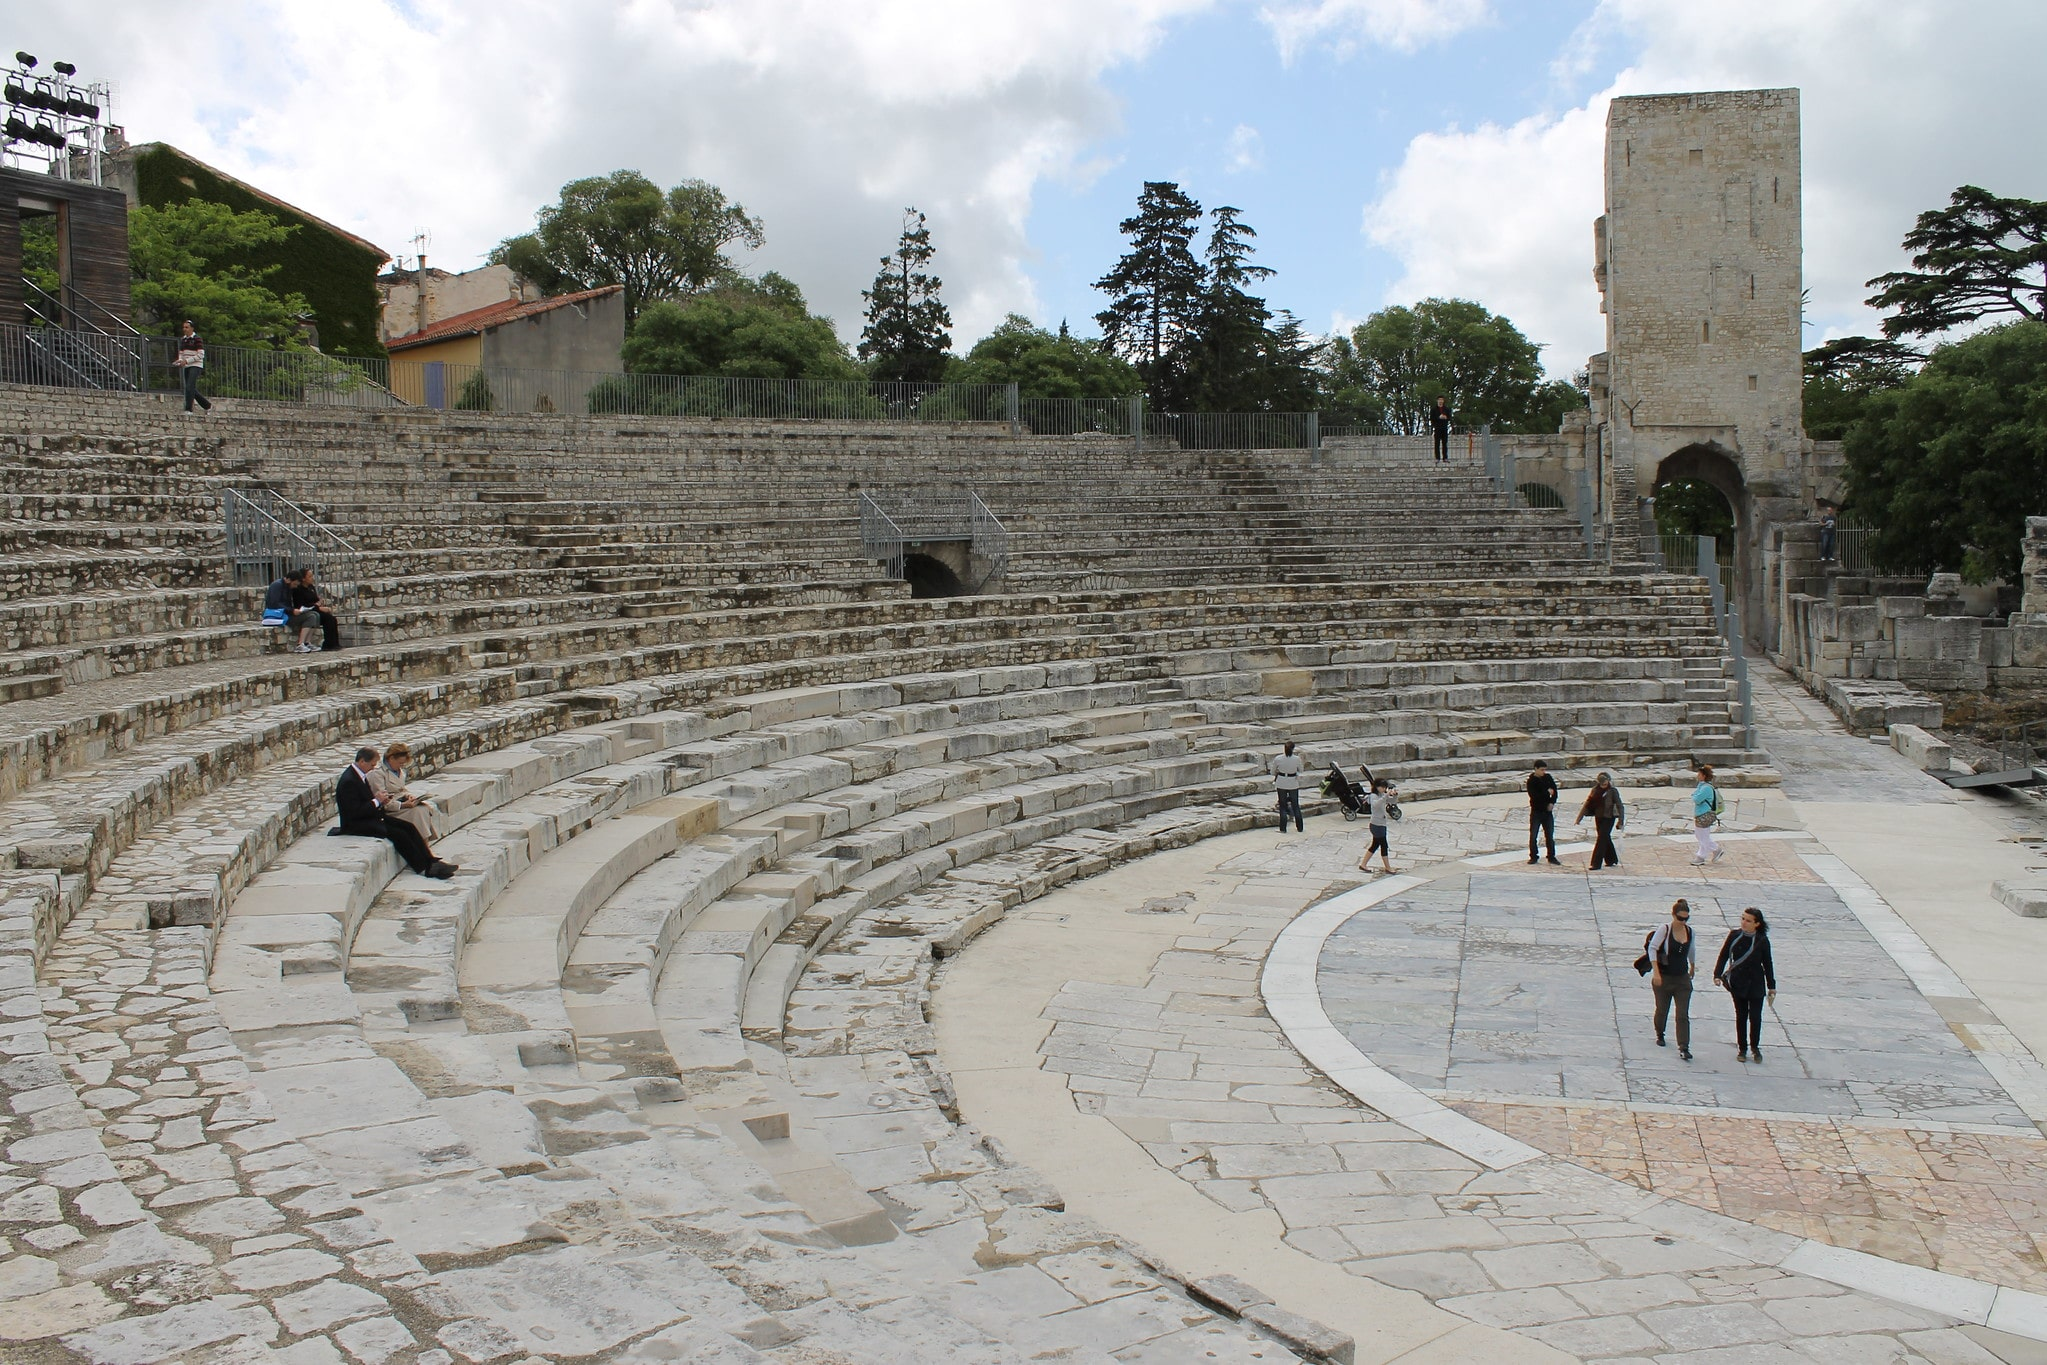 Exploring the Roman ruins in Arles is a great thing to do in France